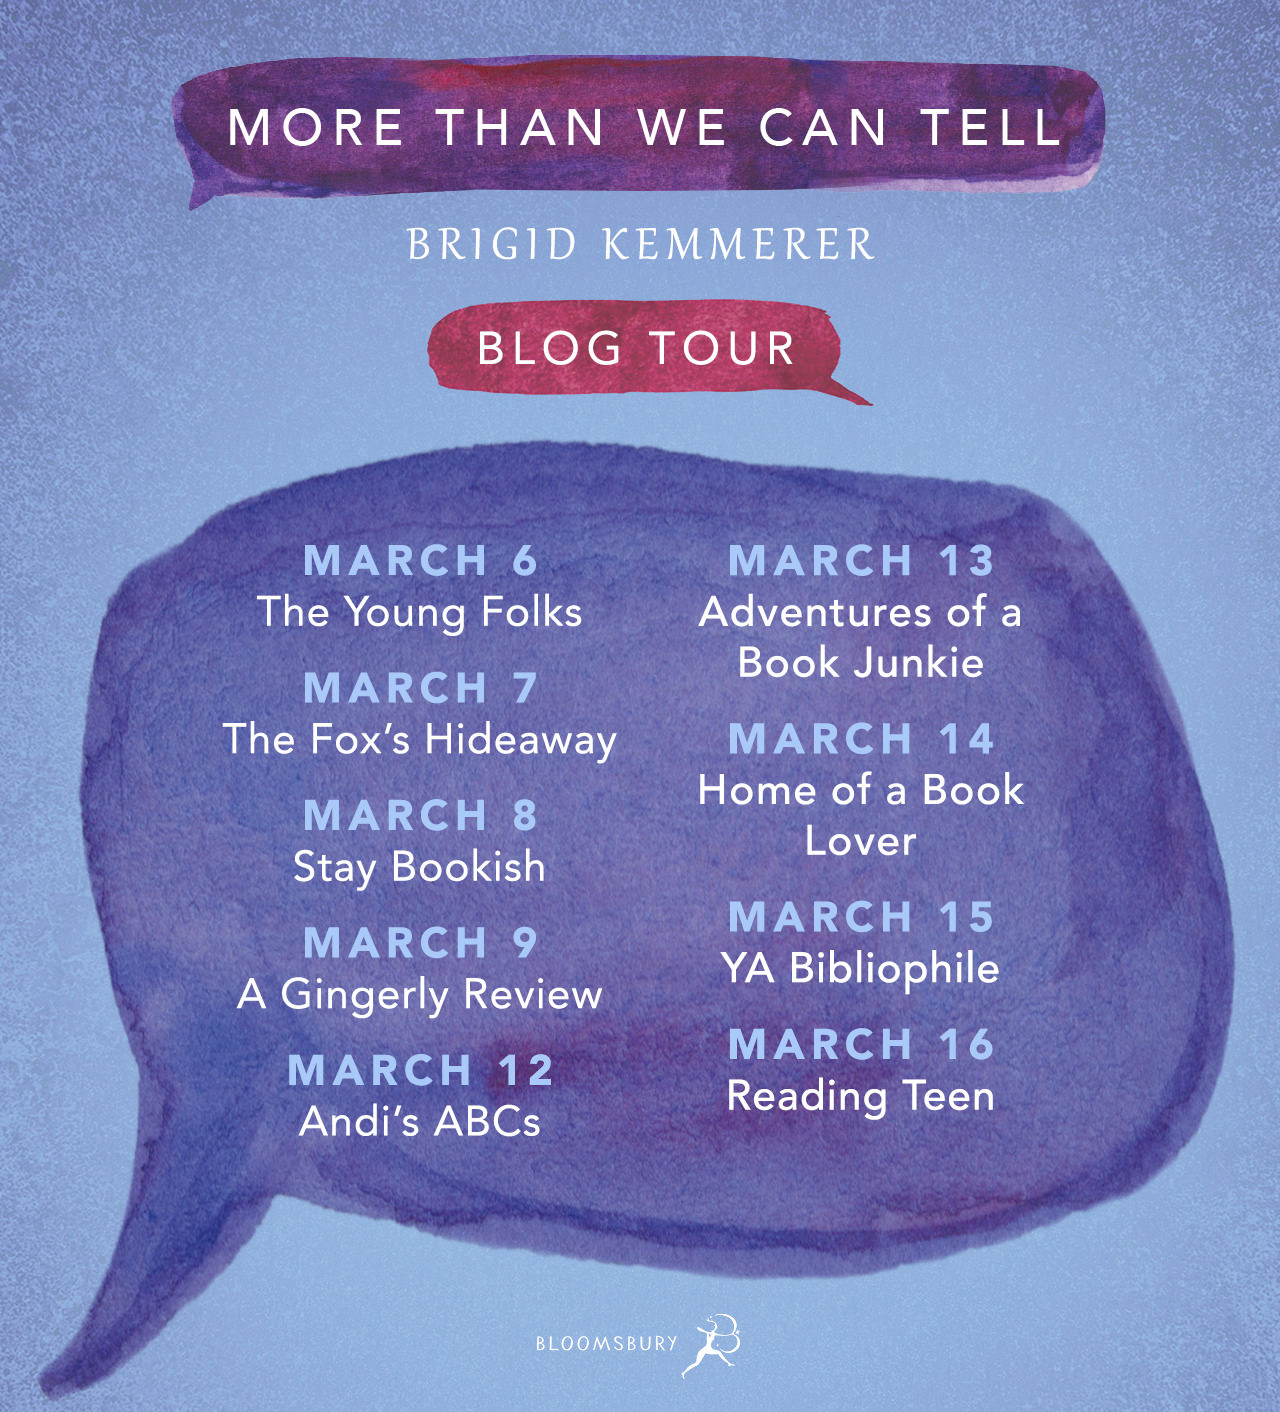 MORE THAN WE CAN TELL blog tour